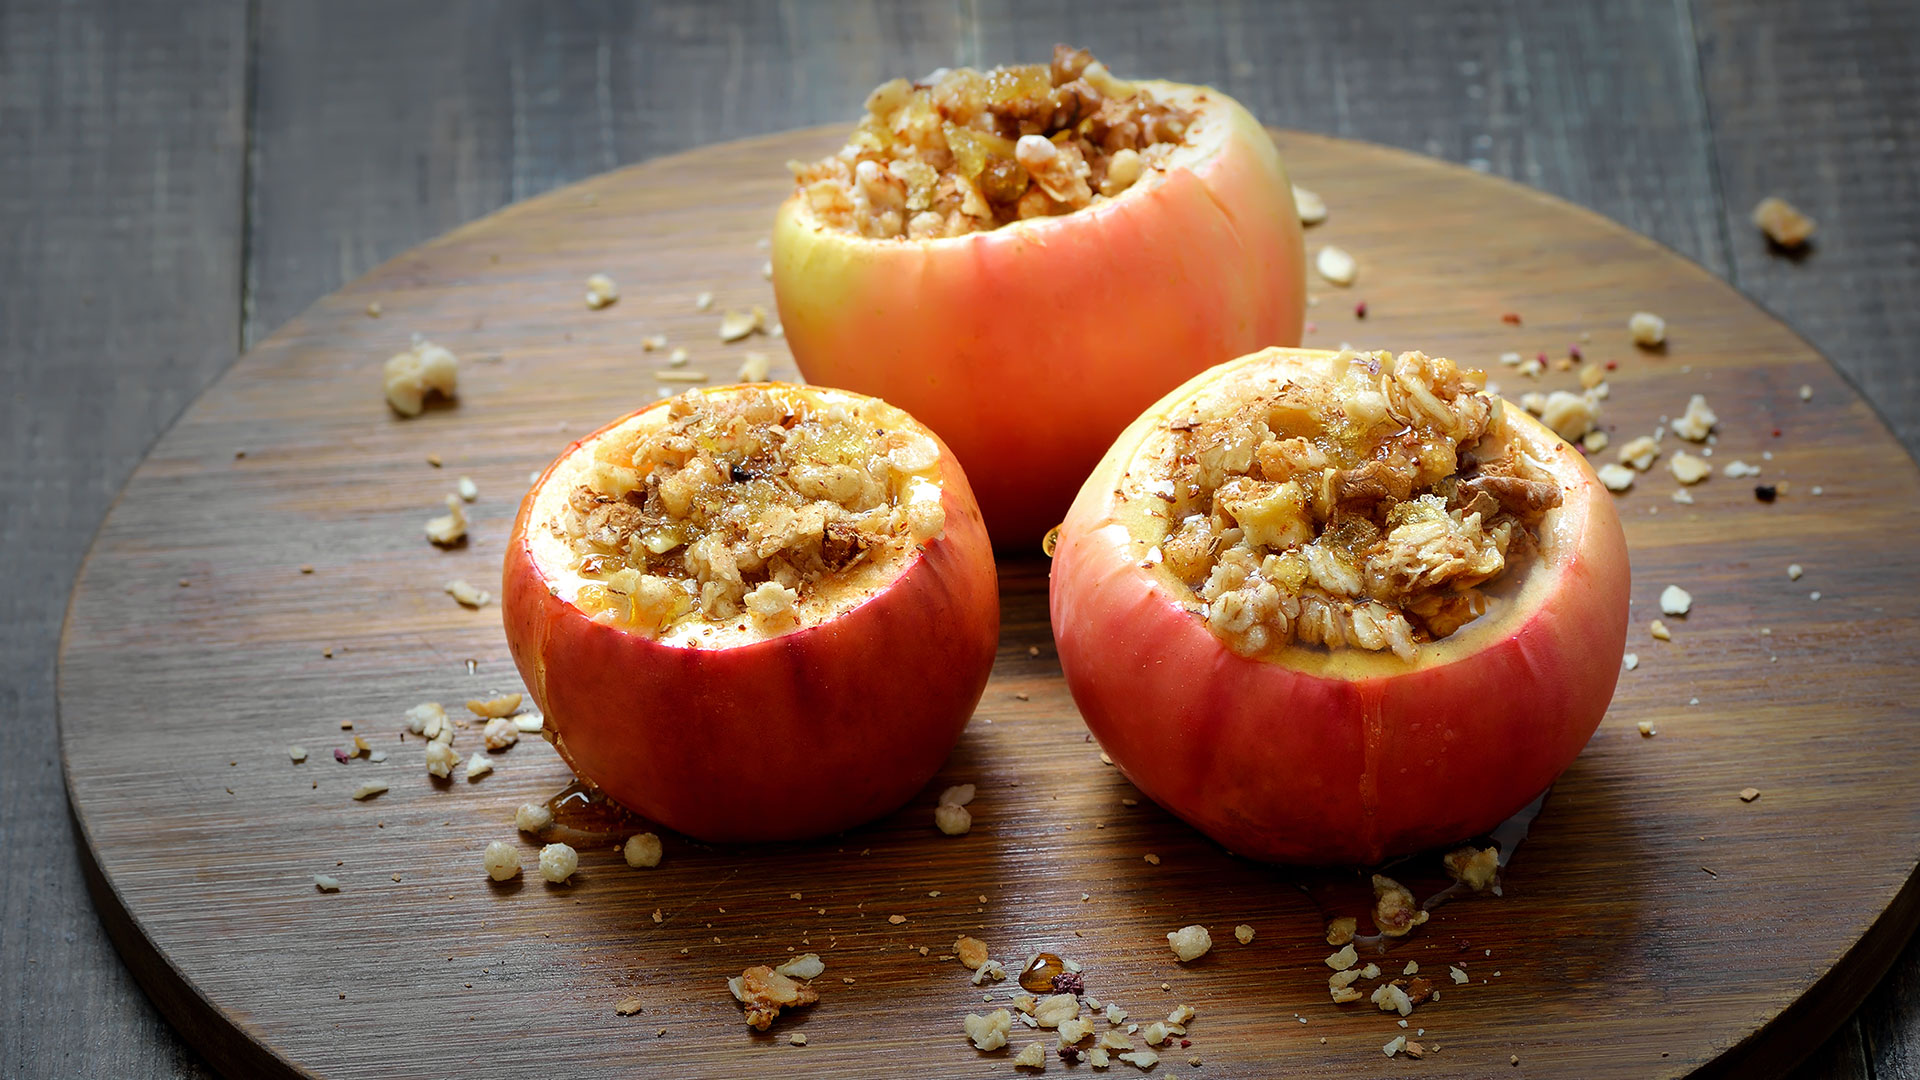 Three baked red apples on a wooden board with granola filling.